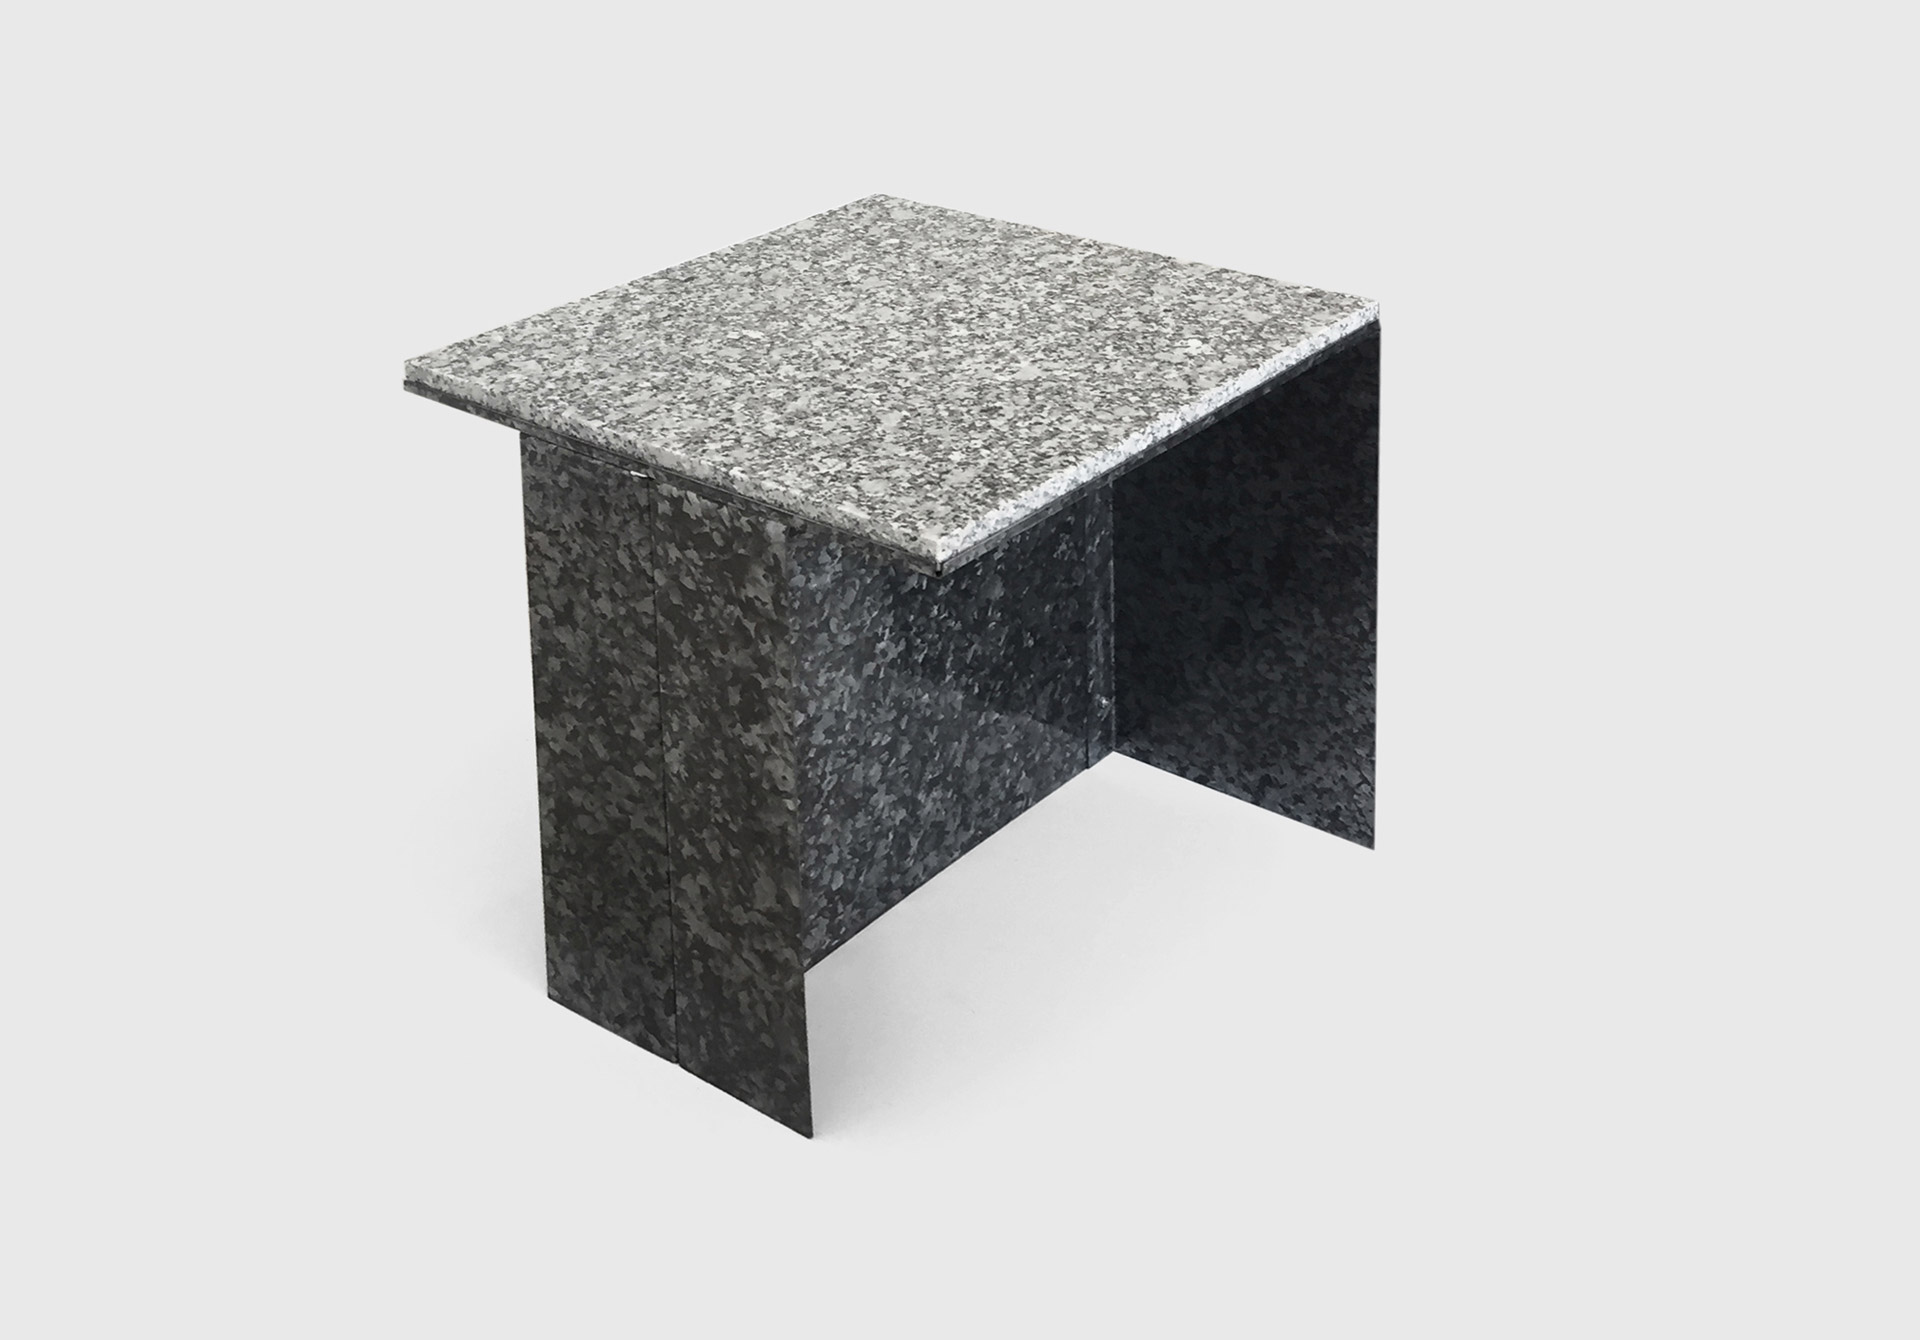 Tino   Seubert Regalvanize & Granite Table